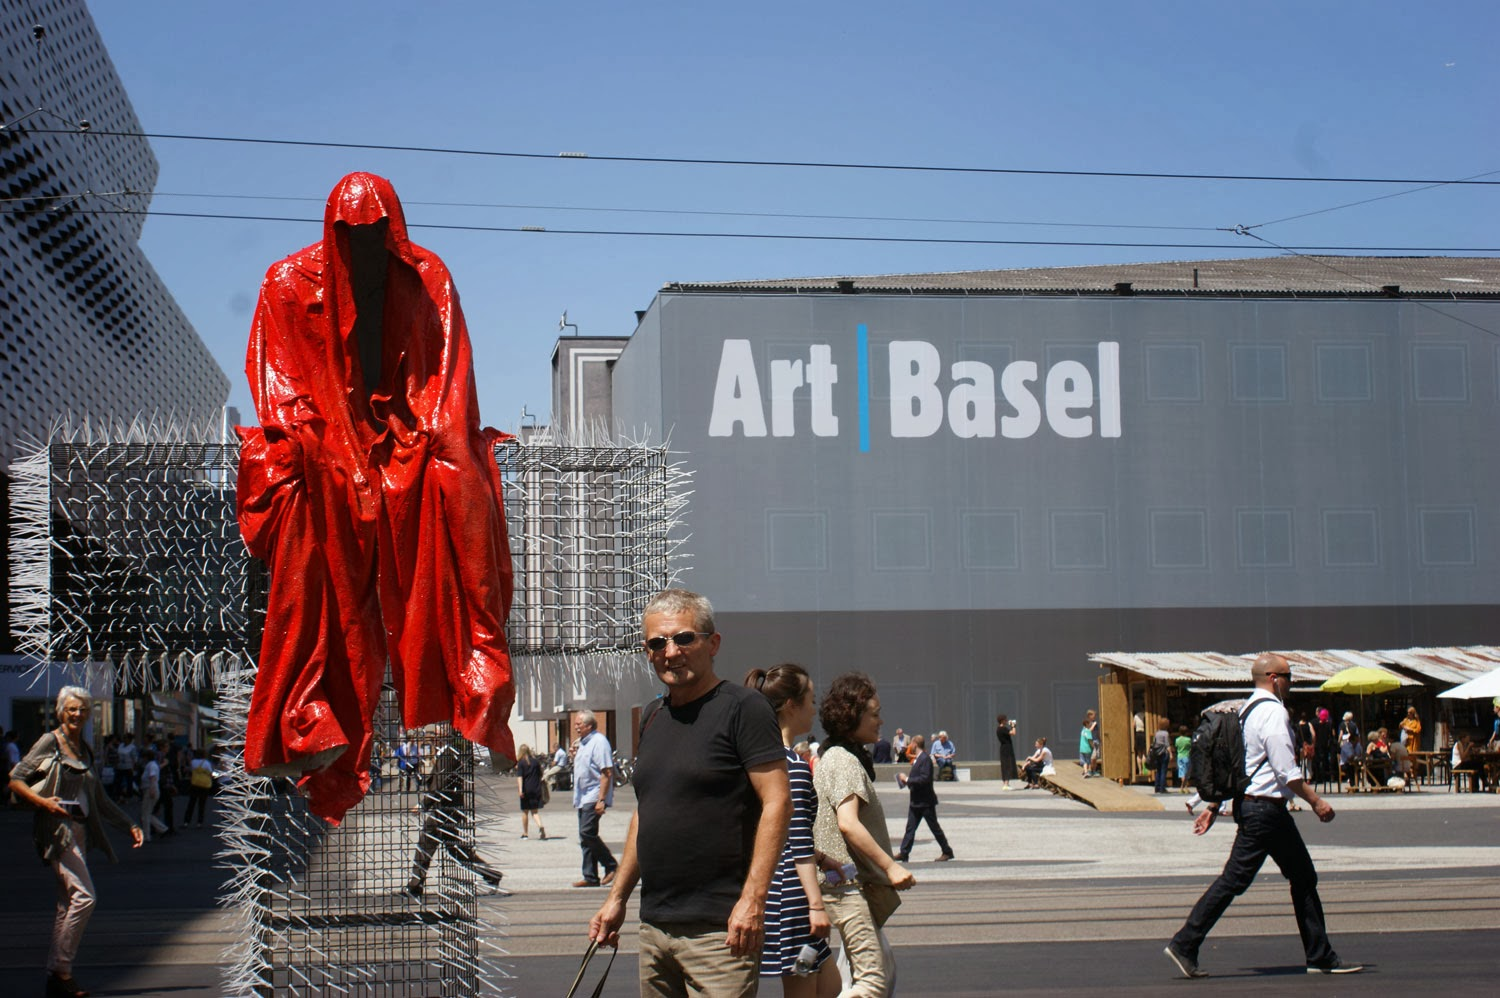 Uncategorized Handel Contemporary treseizero contemporary istanbul modern art fair kunst und handel graz vienna sculpture t guardian sculptor christoph luckeneder m